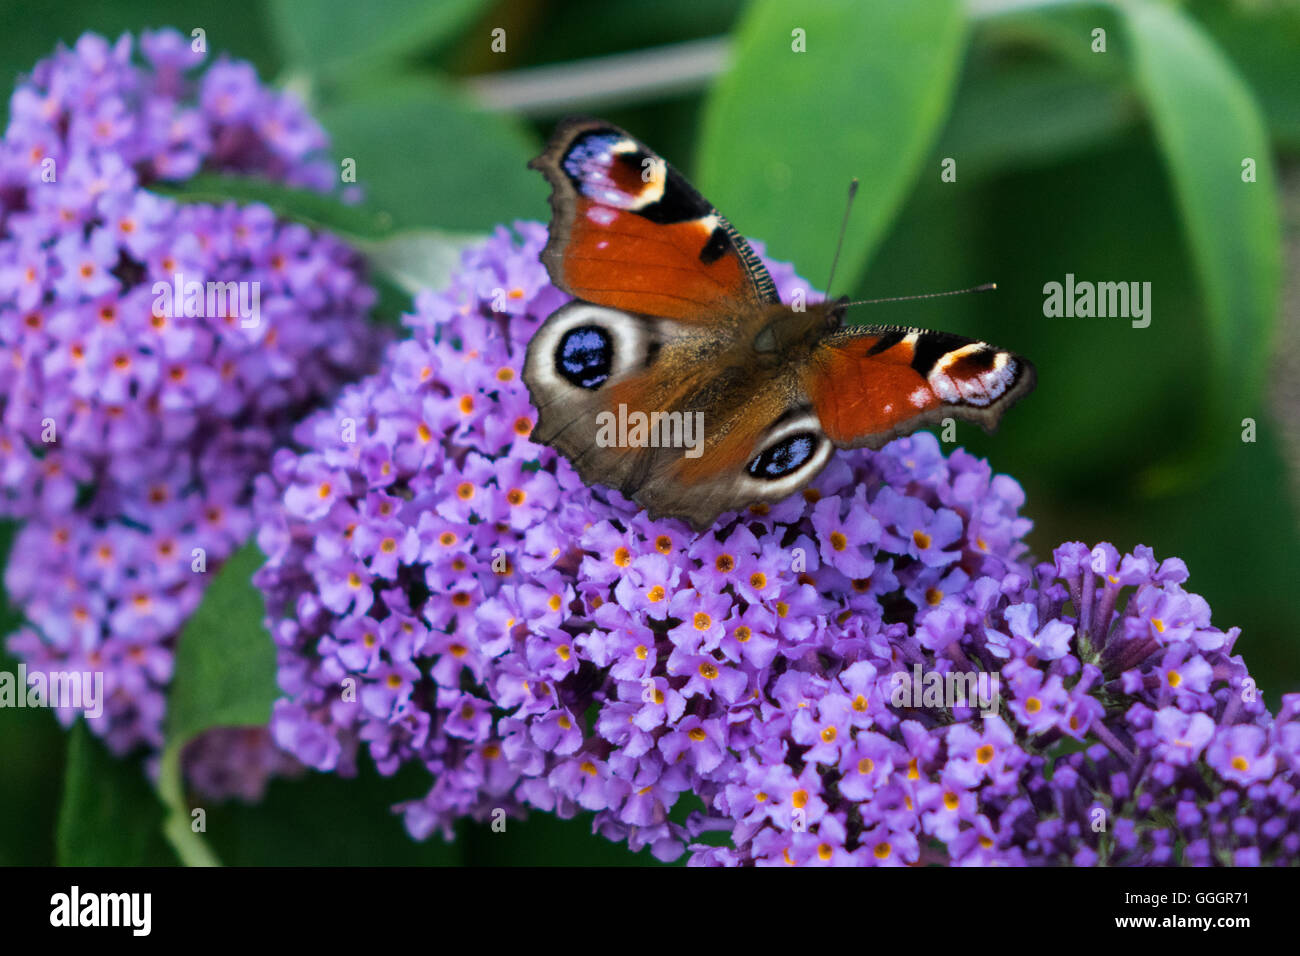 Peacock butterfly on Buddleia - Stock Image